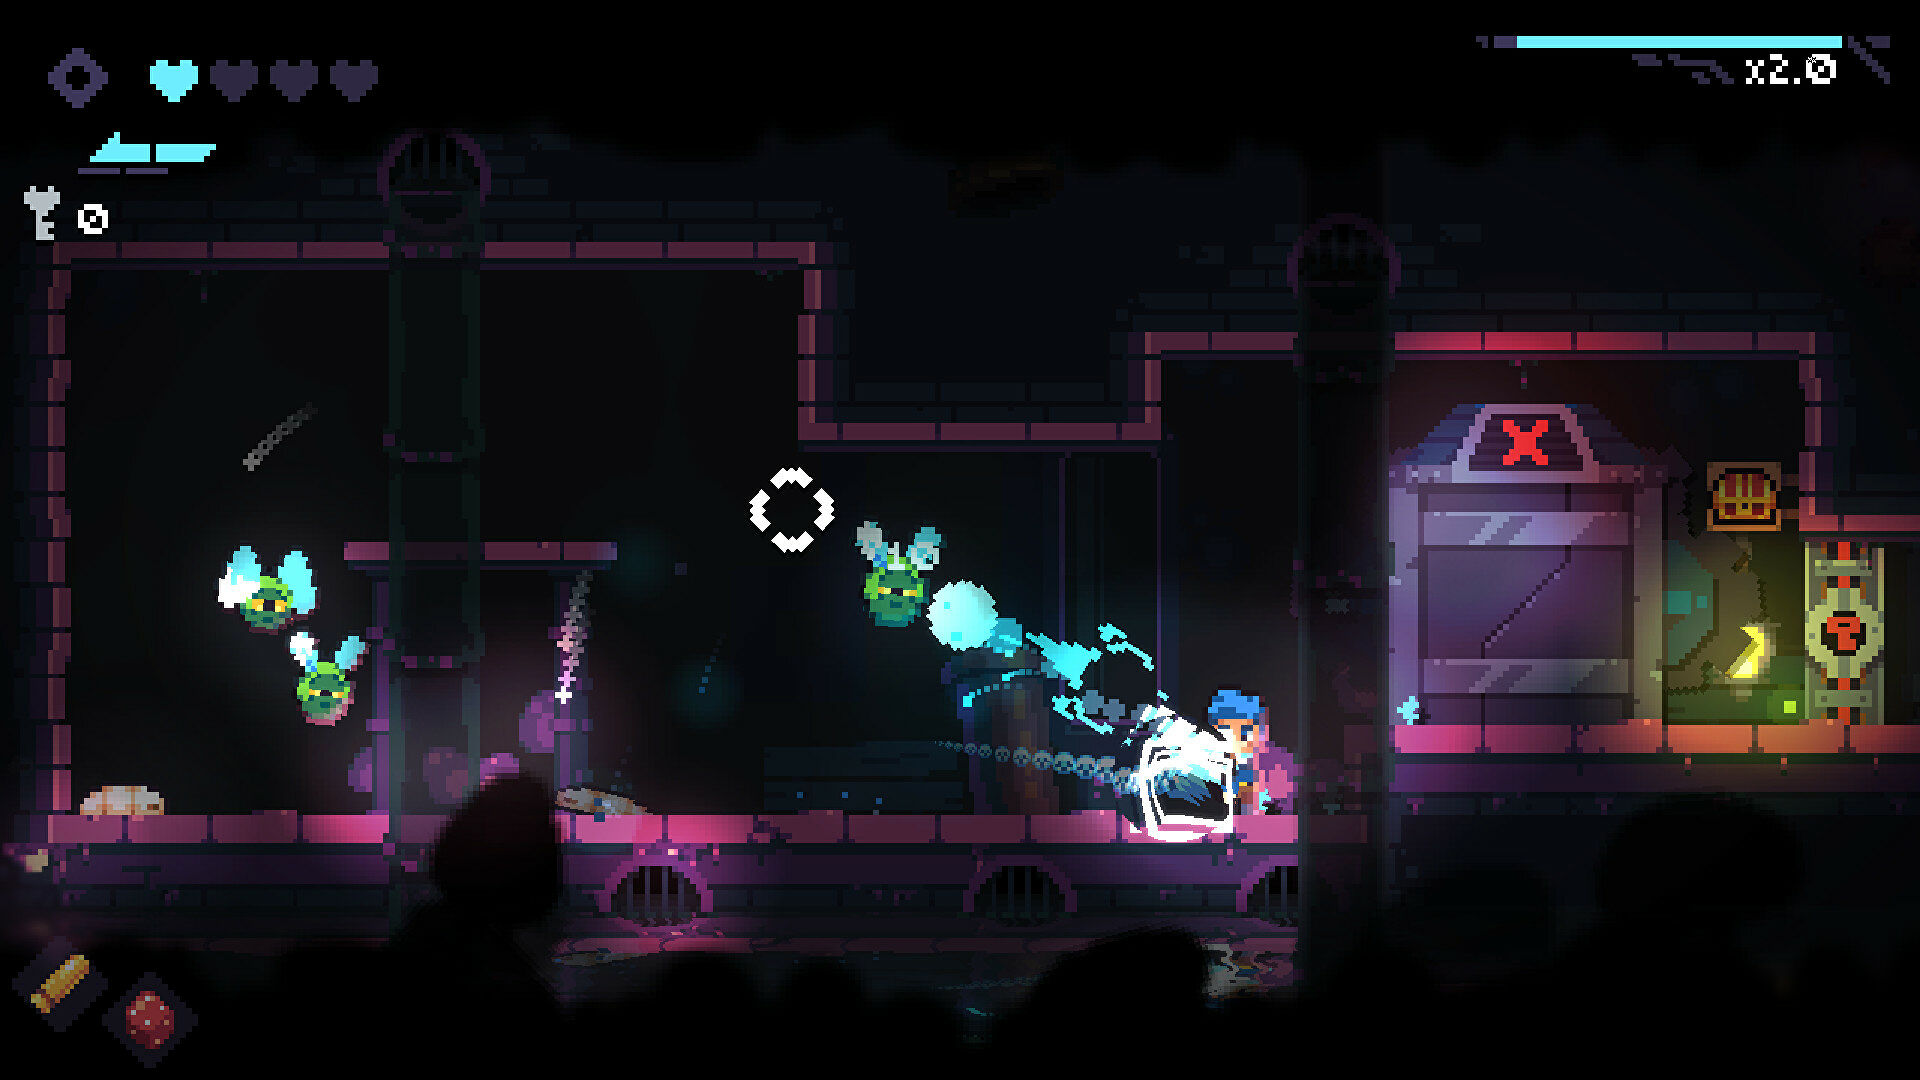 Roguelike platformer Revita launches in early access